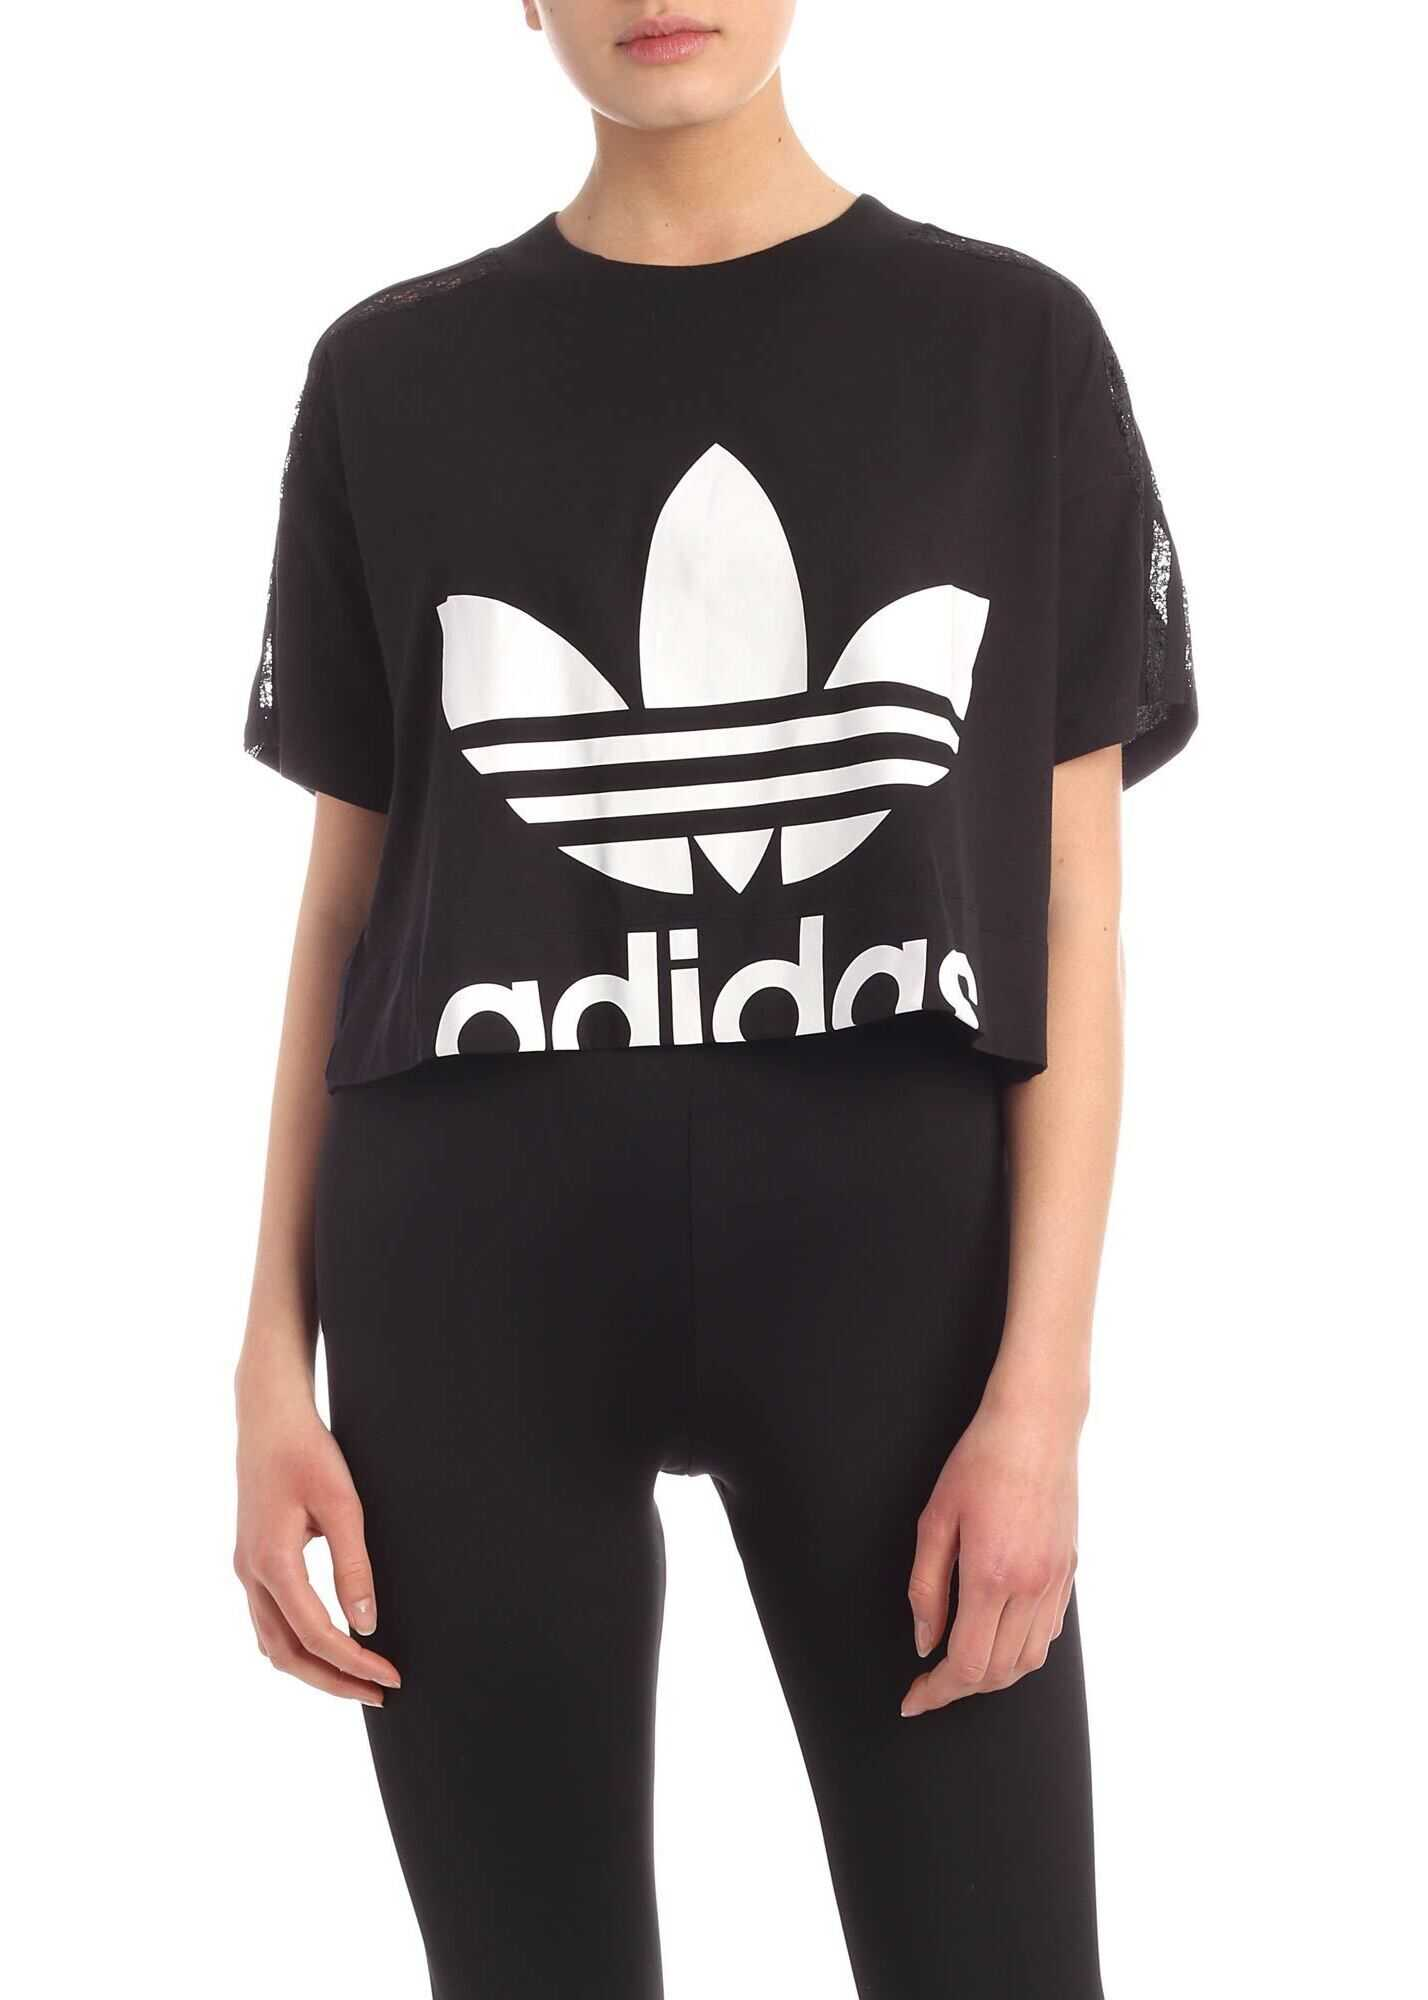 adidas Originals Cropped Black T-Shirt With Lace Details Black